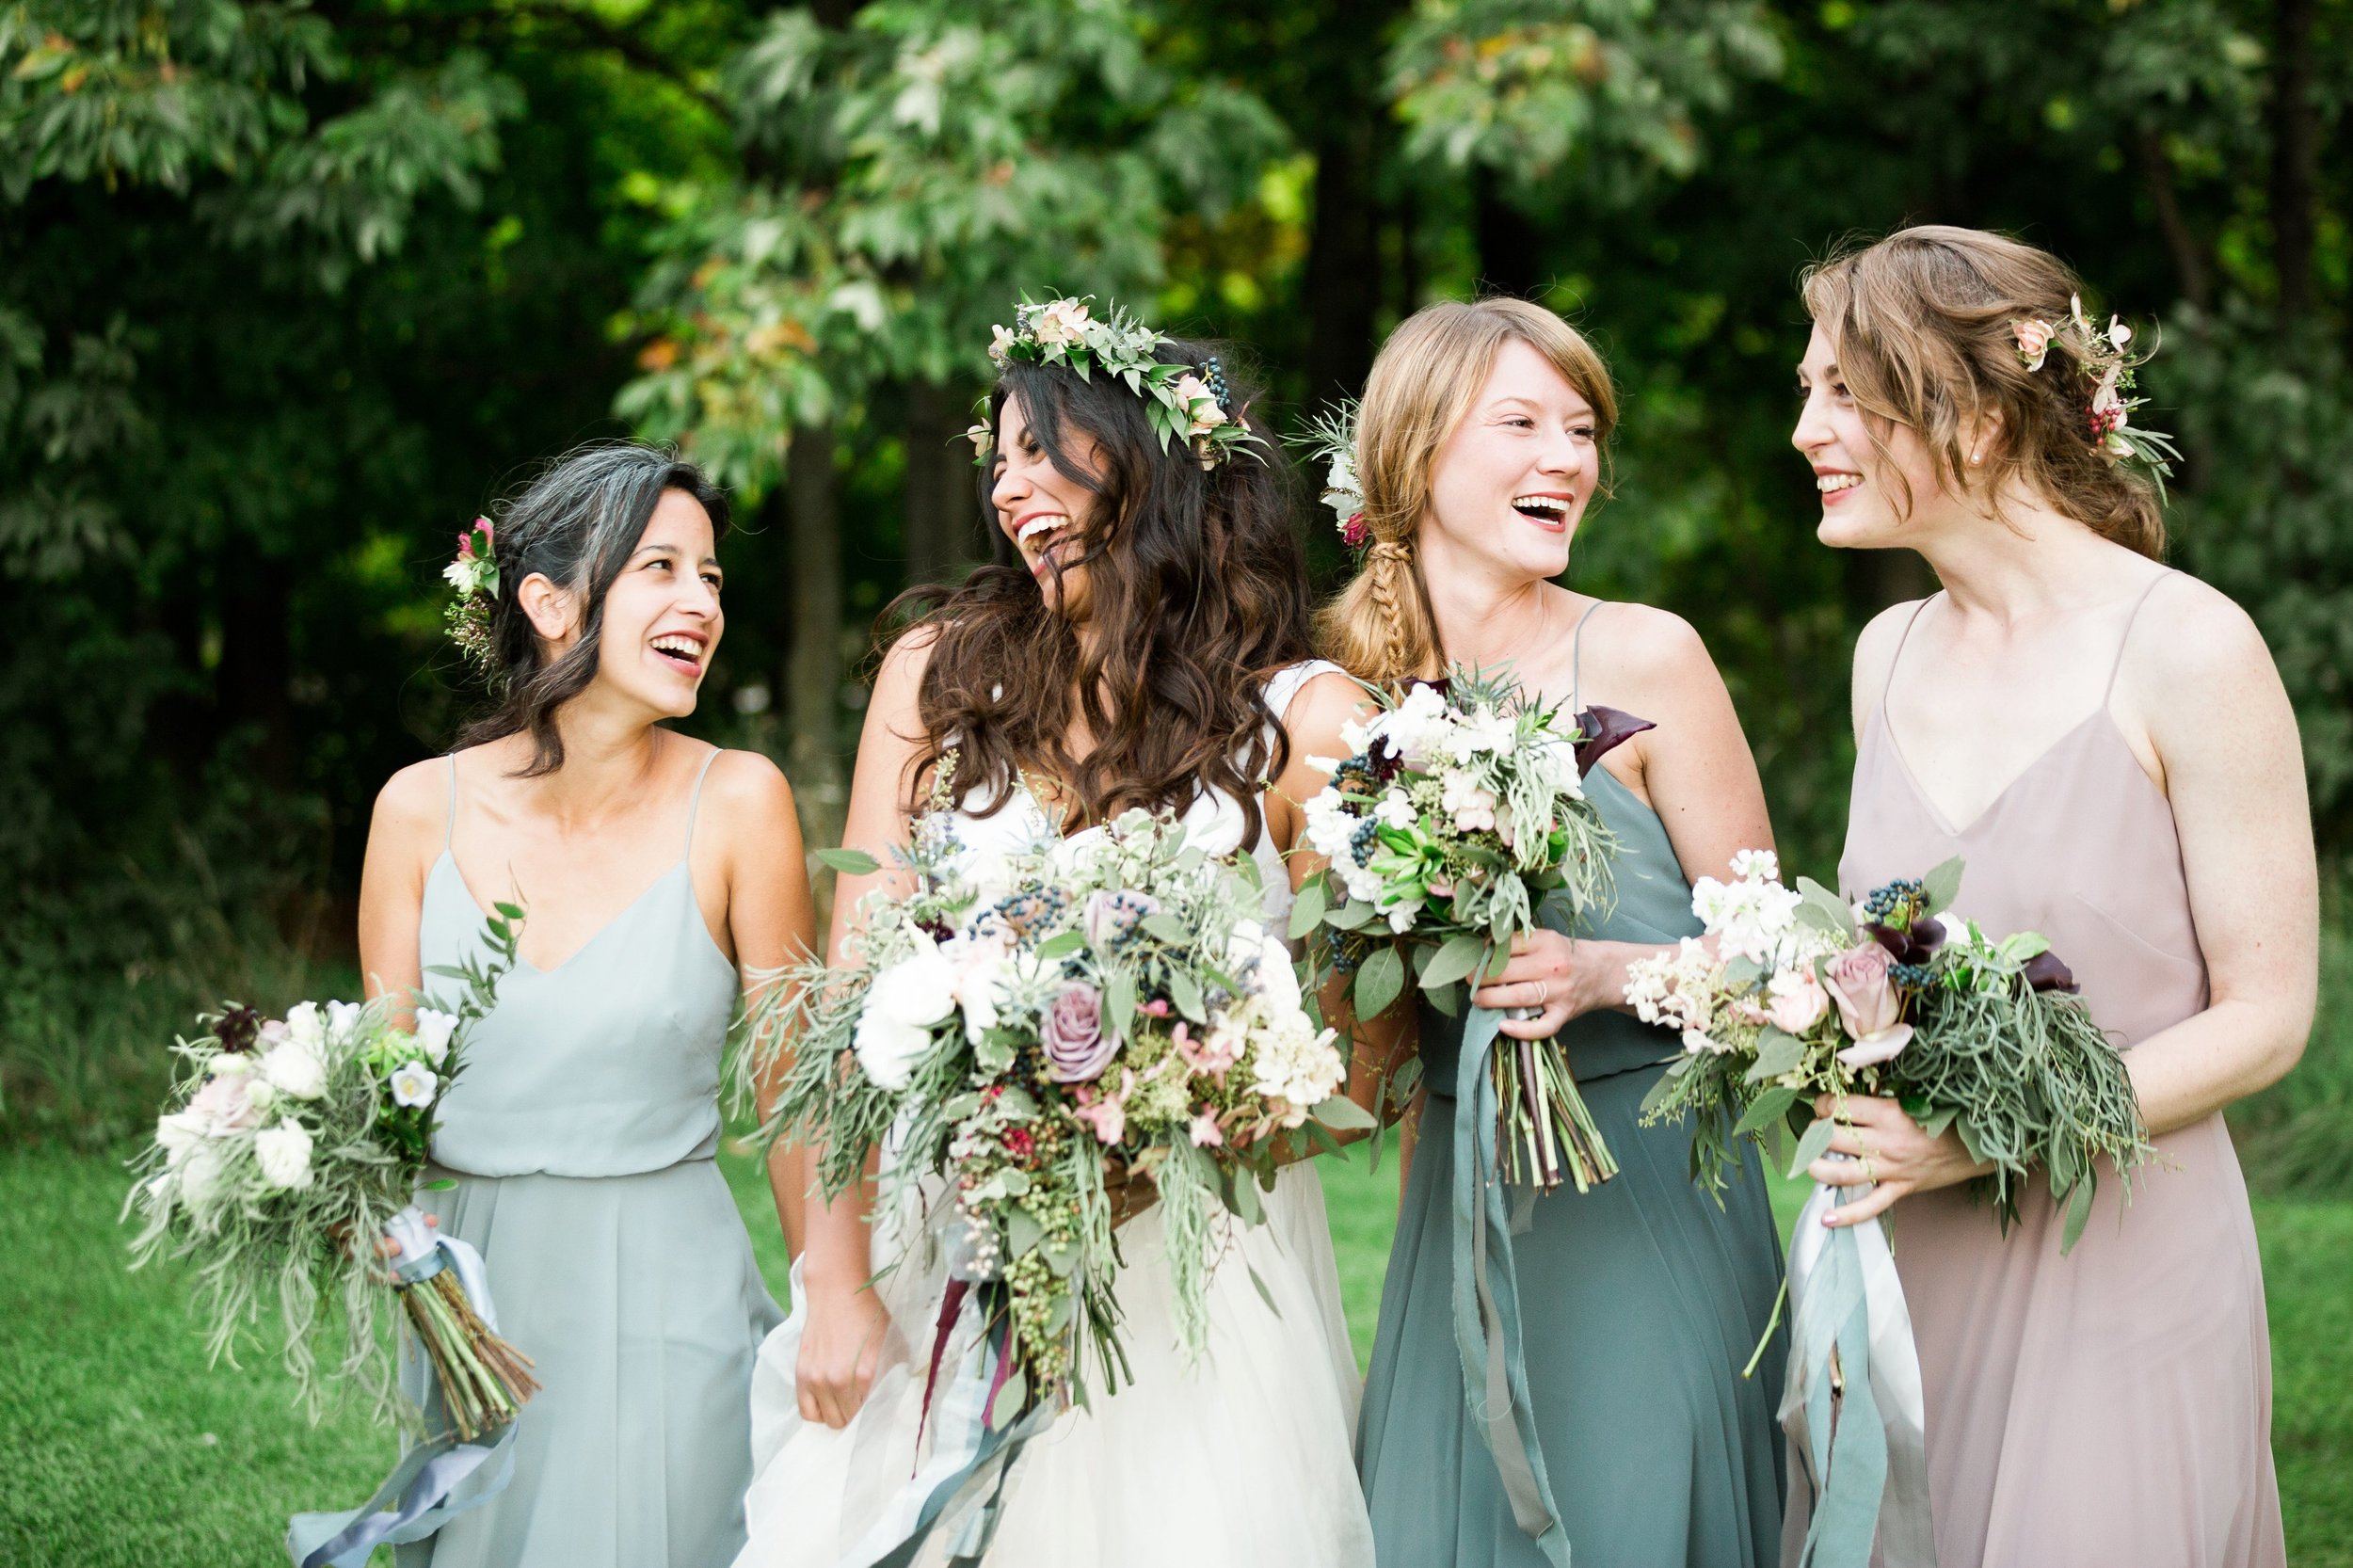 unique boho bridal party outdoor summer wedding seattle wa.jpg